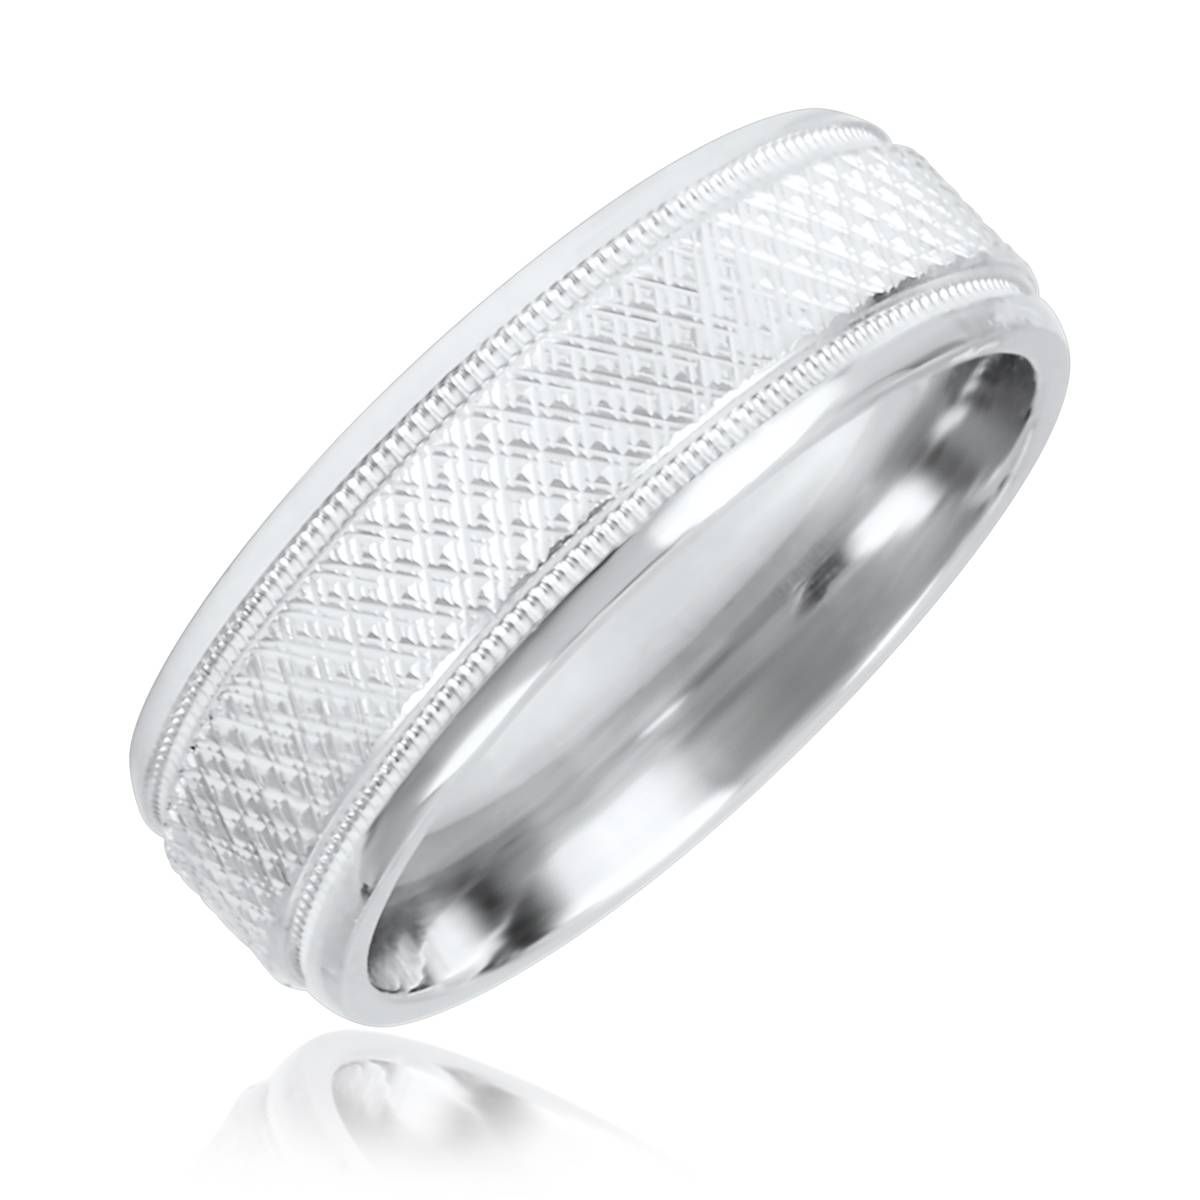 Zig Zag Mens Wedding Band 10K White Gold Pertaining To Most Recent Men White Gold Wedding Band (View 15 of 15)